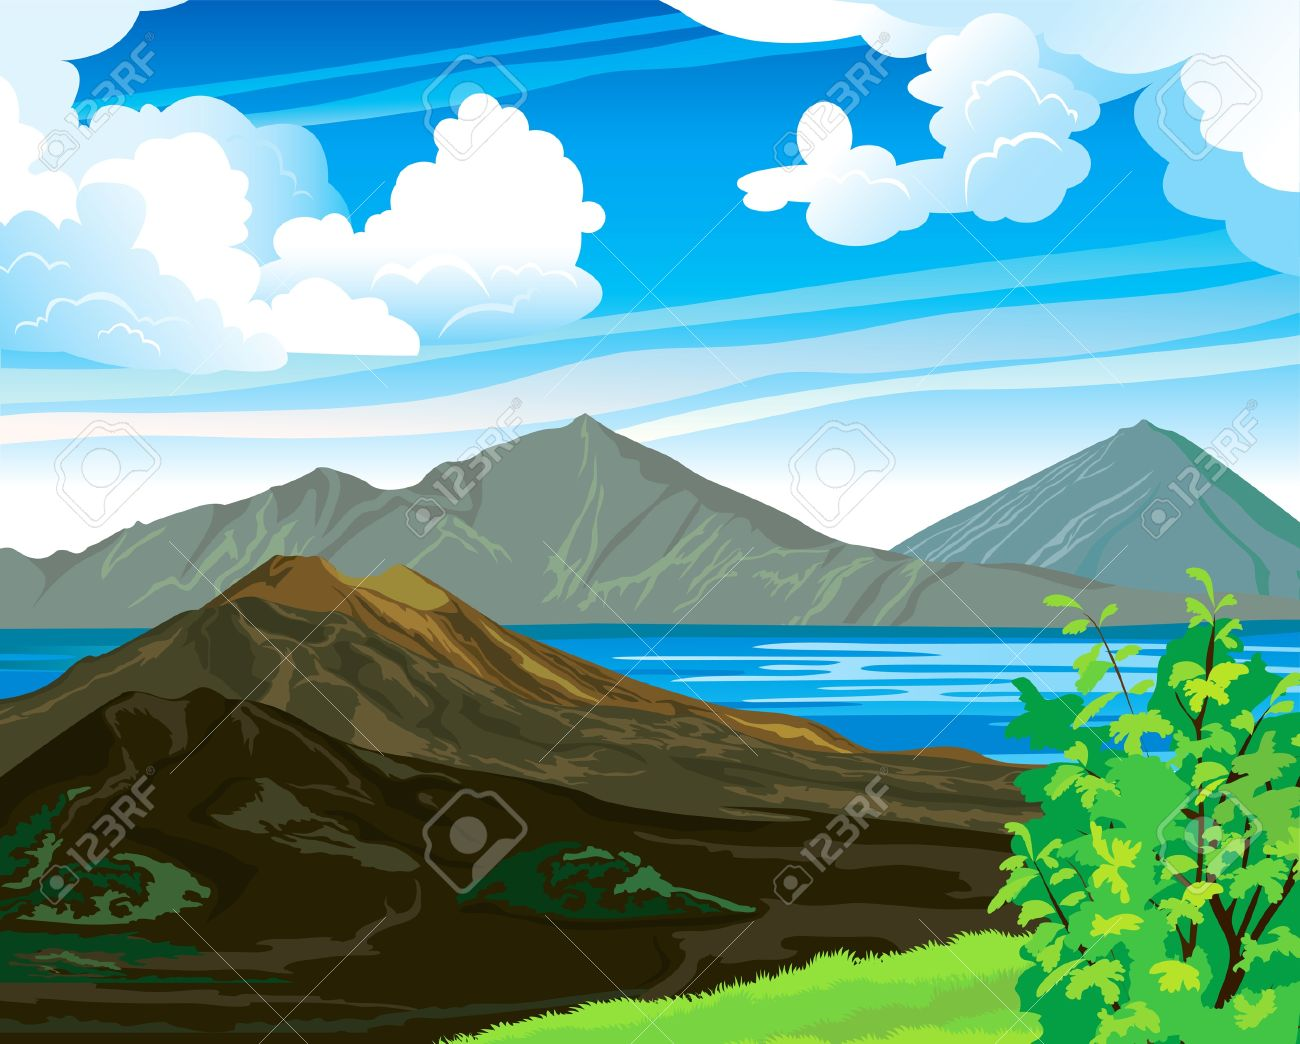 Summer landscape with volcano Batur and blue lake on a cloudy sky. Indonesia, Bali. Stock Vector - 13283162